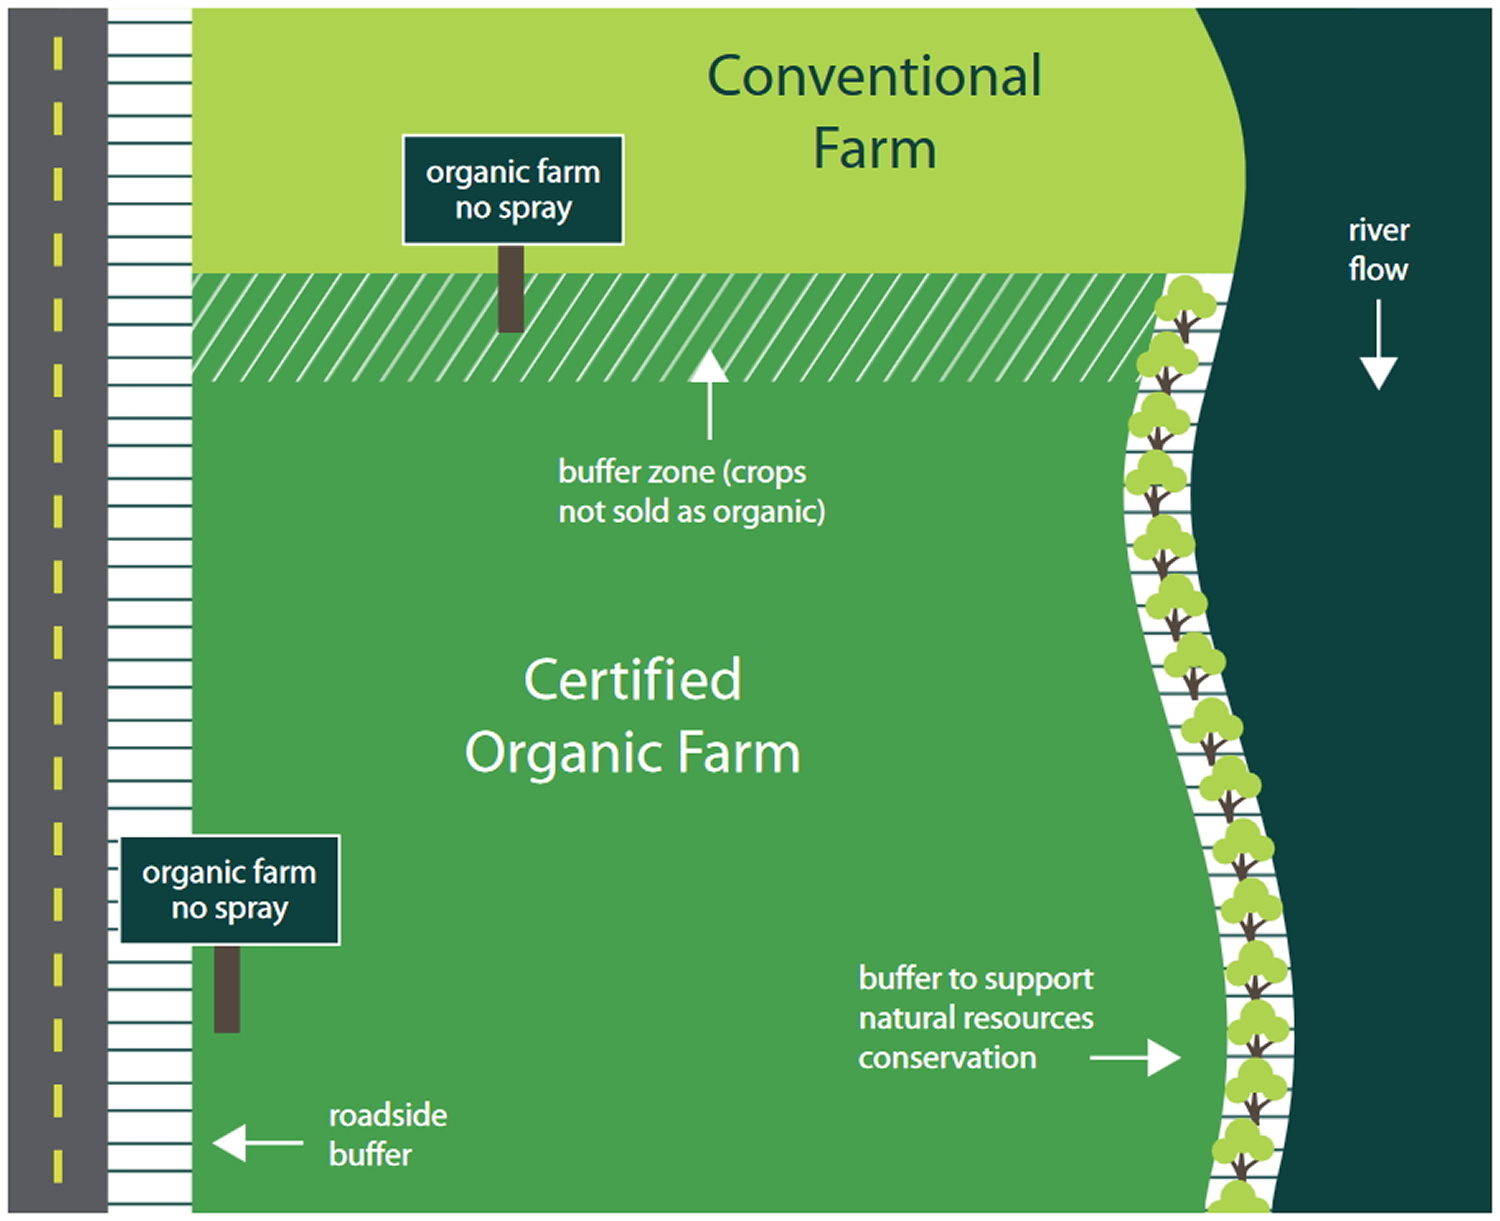 genetically modified food crop farm layout